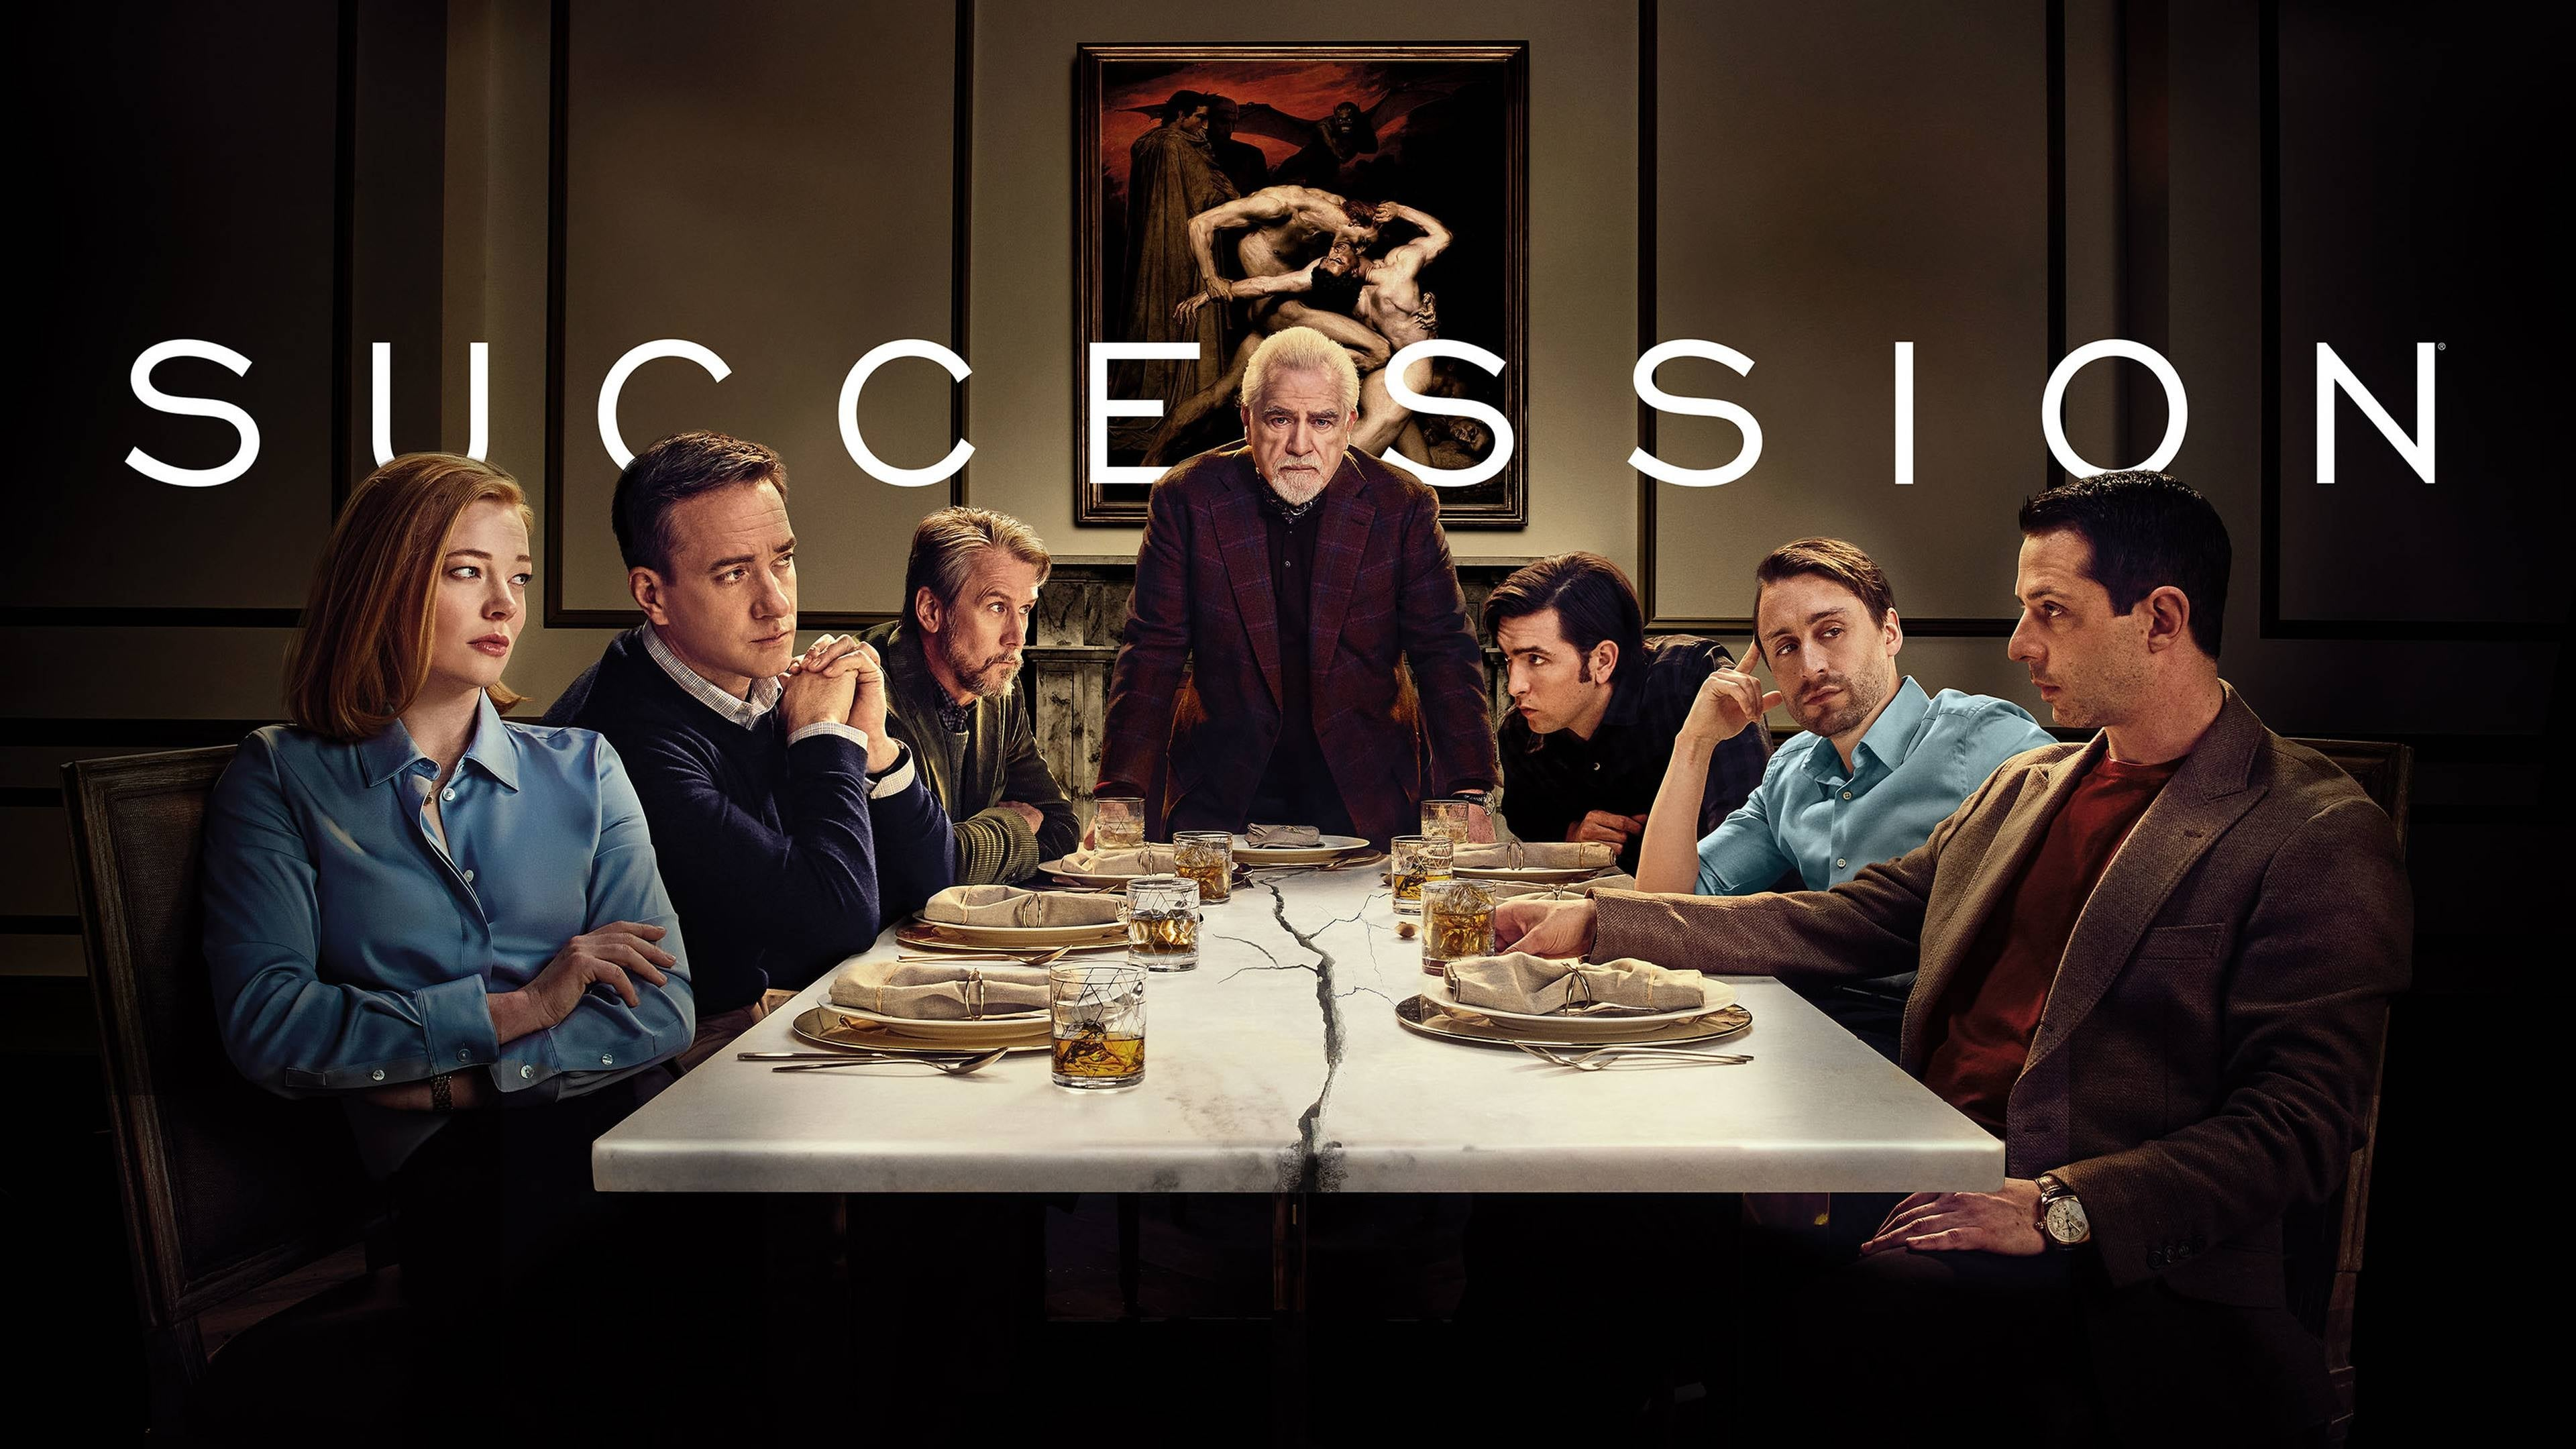 Starting date for third season of Succession